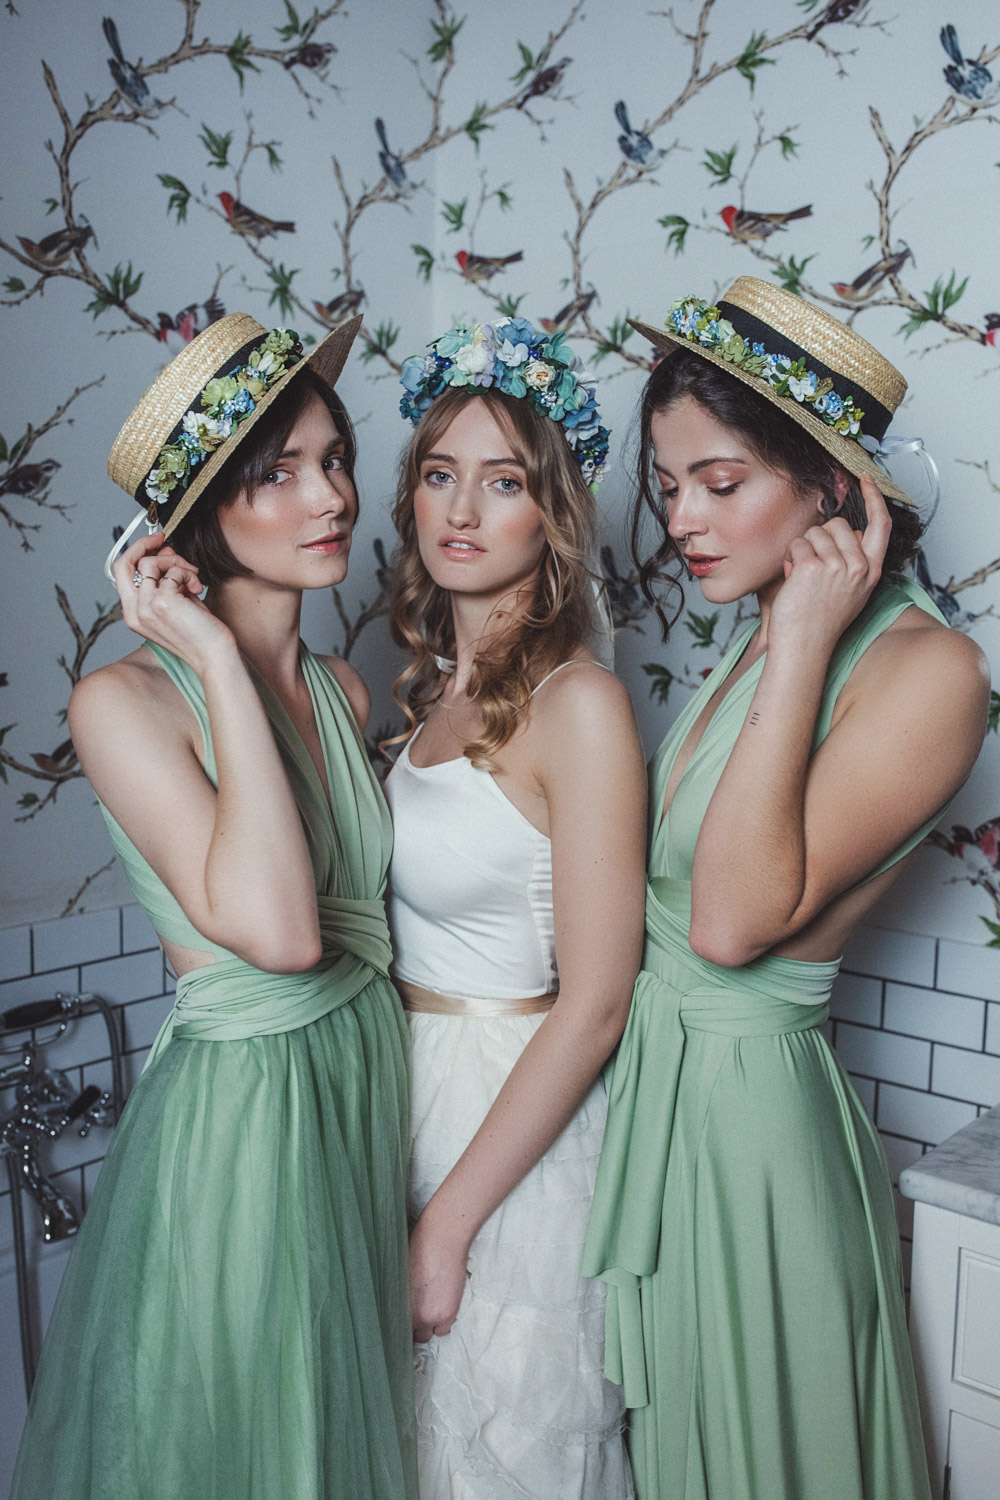 We-Are-Flowergirls-Shooting-Bilder-web-Neverland-Collection-Blumenkrank-Flowercrown-Seidenblumen-Hochzeit-Headpiece-Wedding[18].jpg